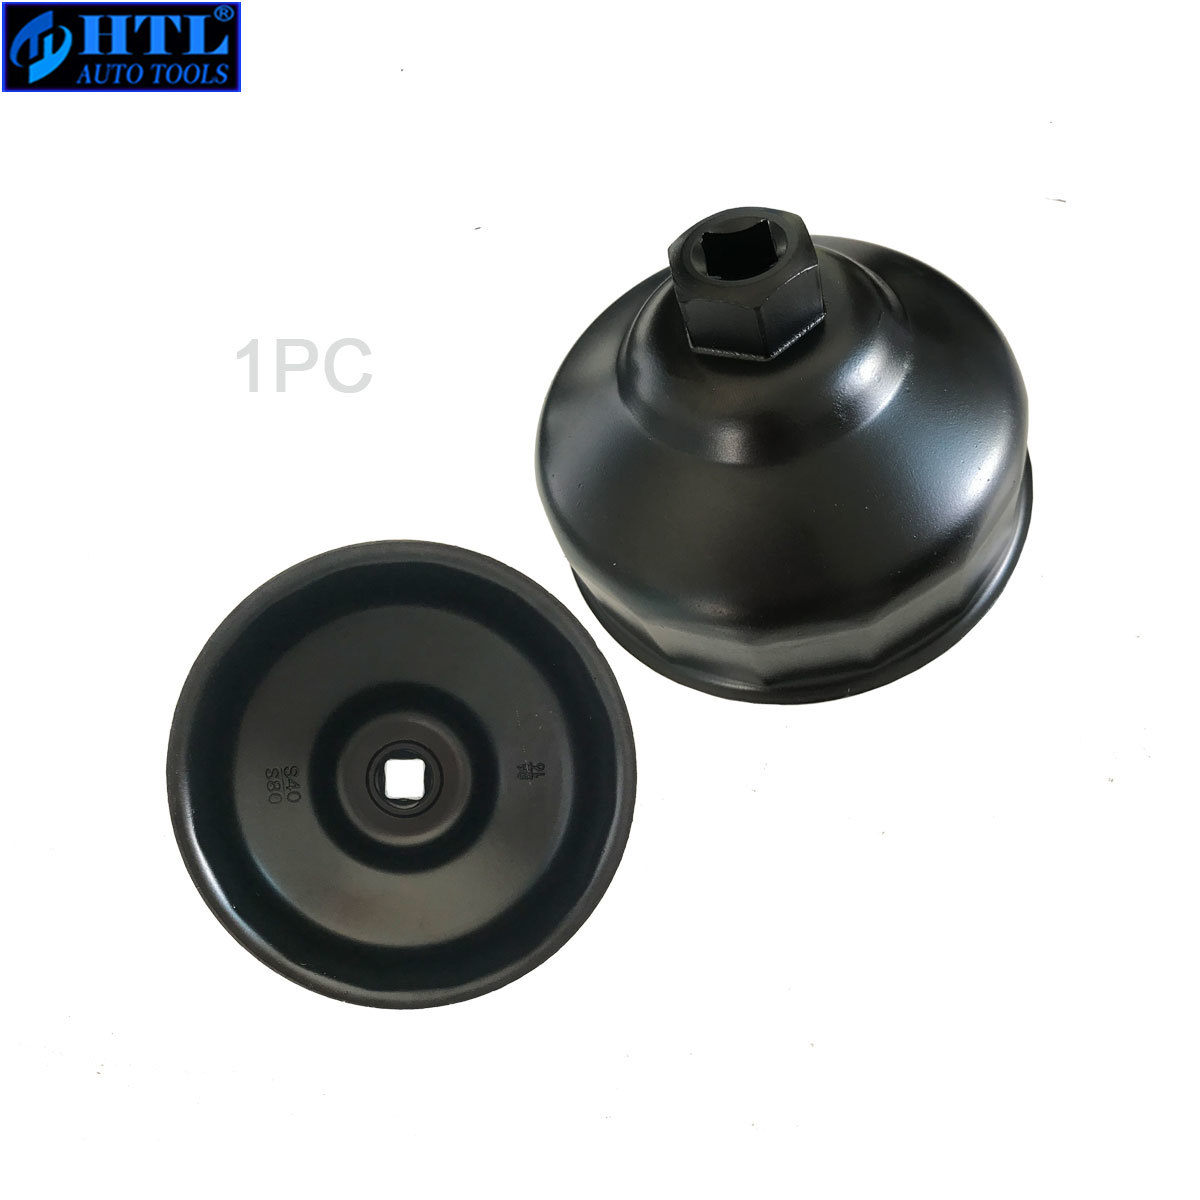 OIL Filter Cap Wrench SOCKET Removal Tool 87mm 16 Flutes FOR BMW 316 318 VOLVO S40